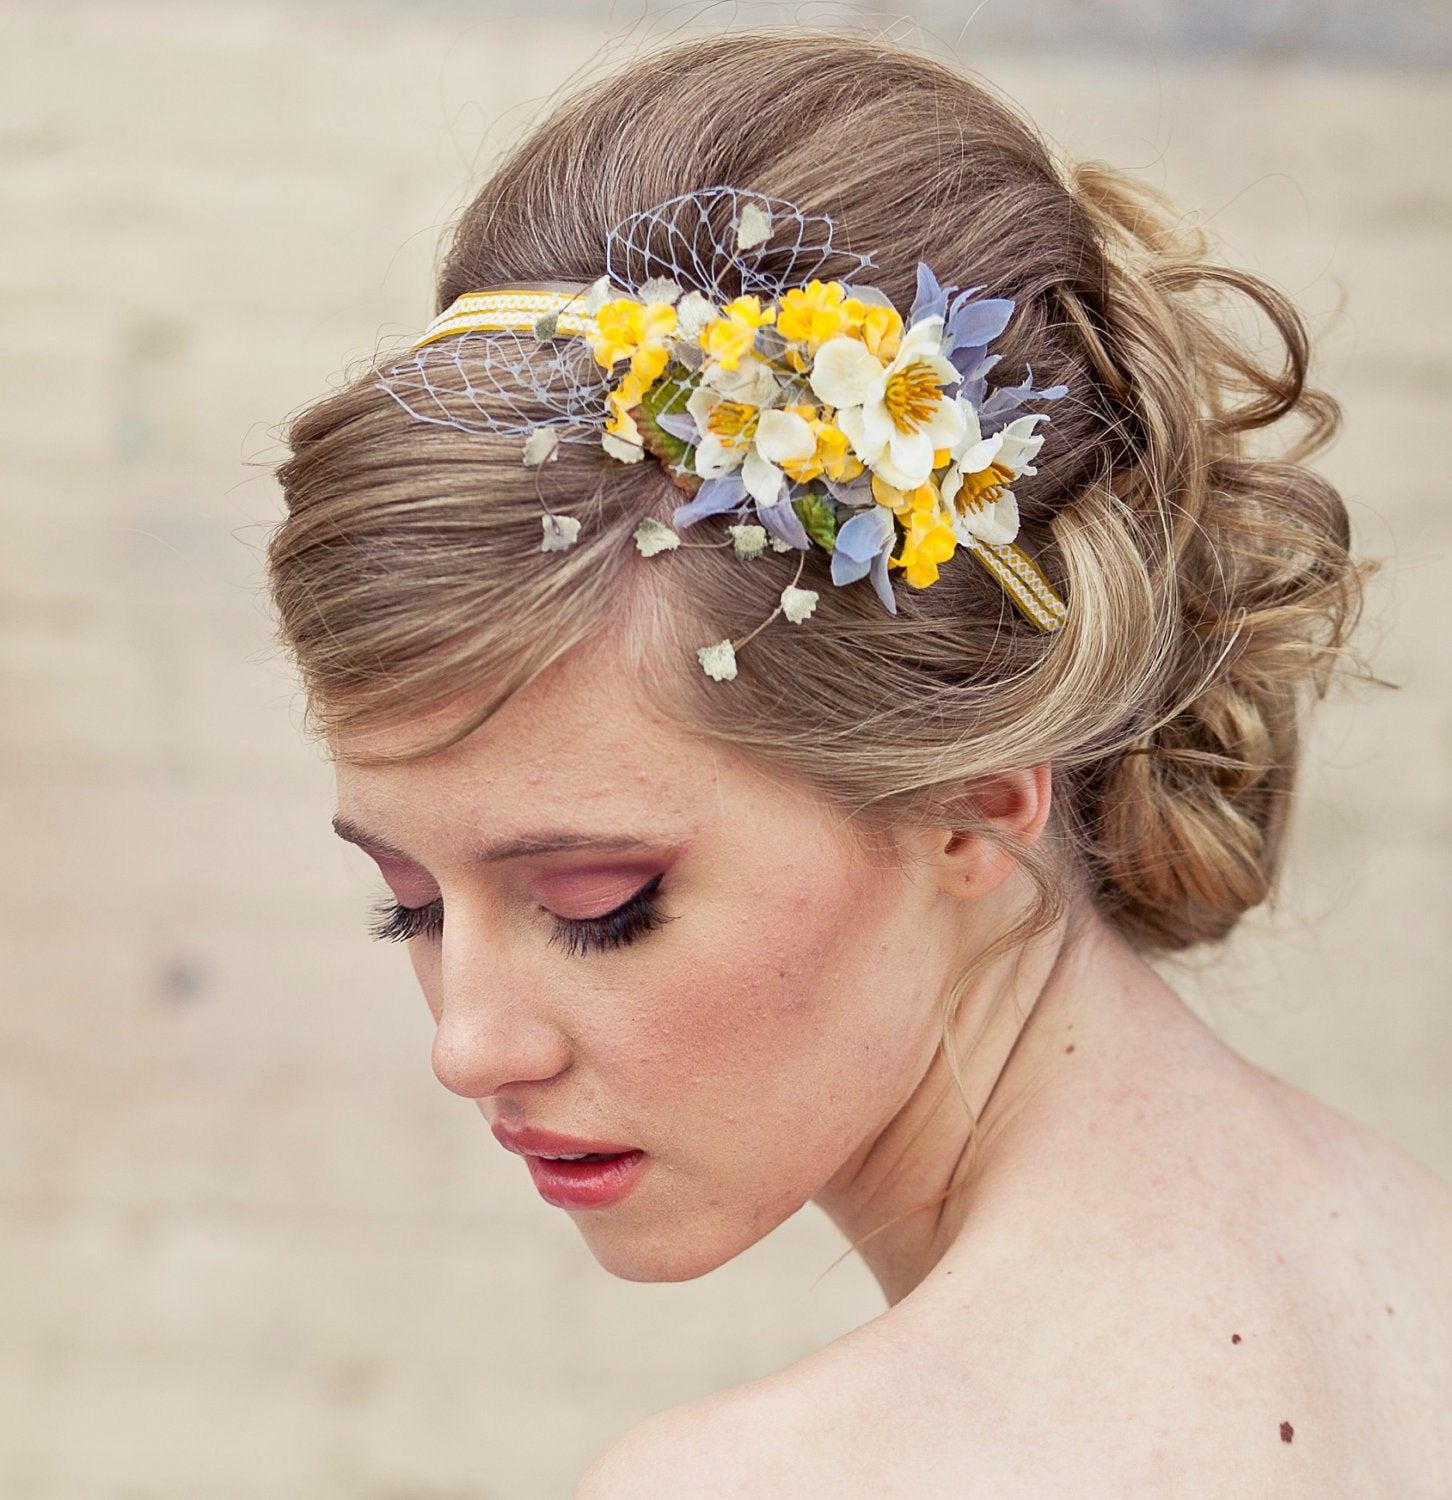 The Best Spring Flowers Headband Headbands For Women And Weddings Pictures